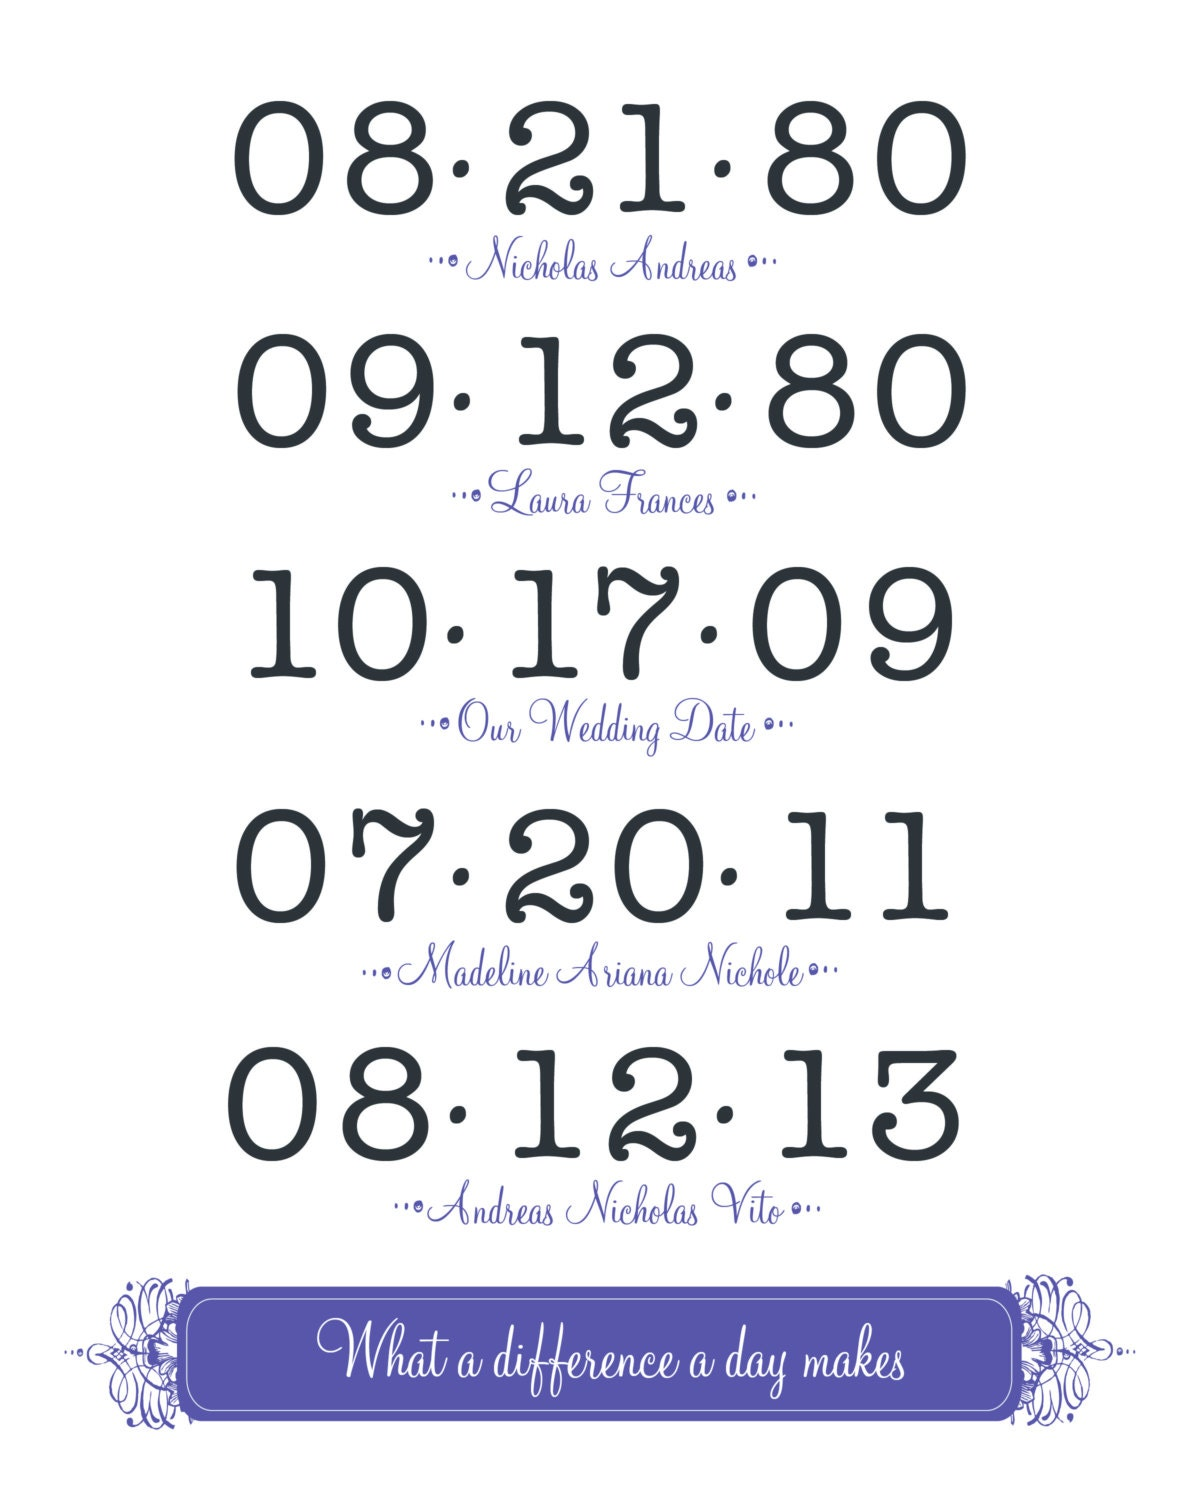 graphic regarding Printable Dates named Printable Wall Artwork- Significant Dates Print, Household One of a kind Dates Poster Artwork, Loved ones Day, Start Dates Wall Artwork 8 X 10